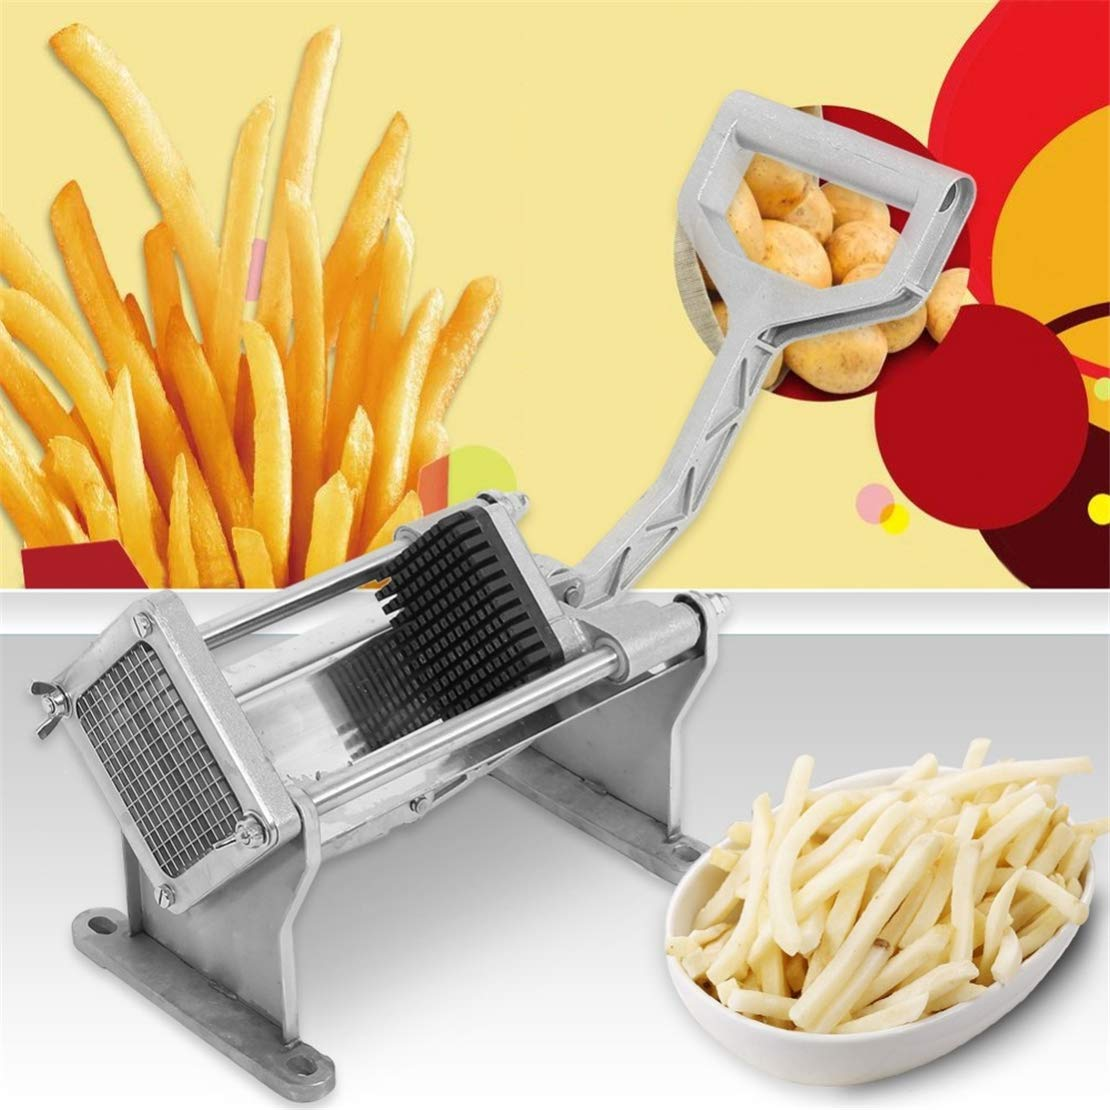 Cool furniture Stainless Steel Potato Cutter Fruit Vegetable Slicer French Fry Chopper Tool with 4 Blades Manual Cutter Tool by Cool furniture